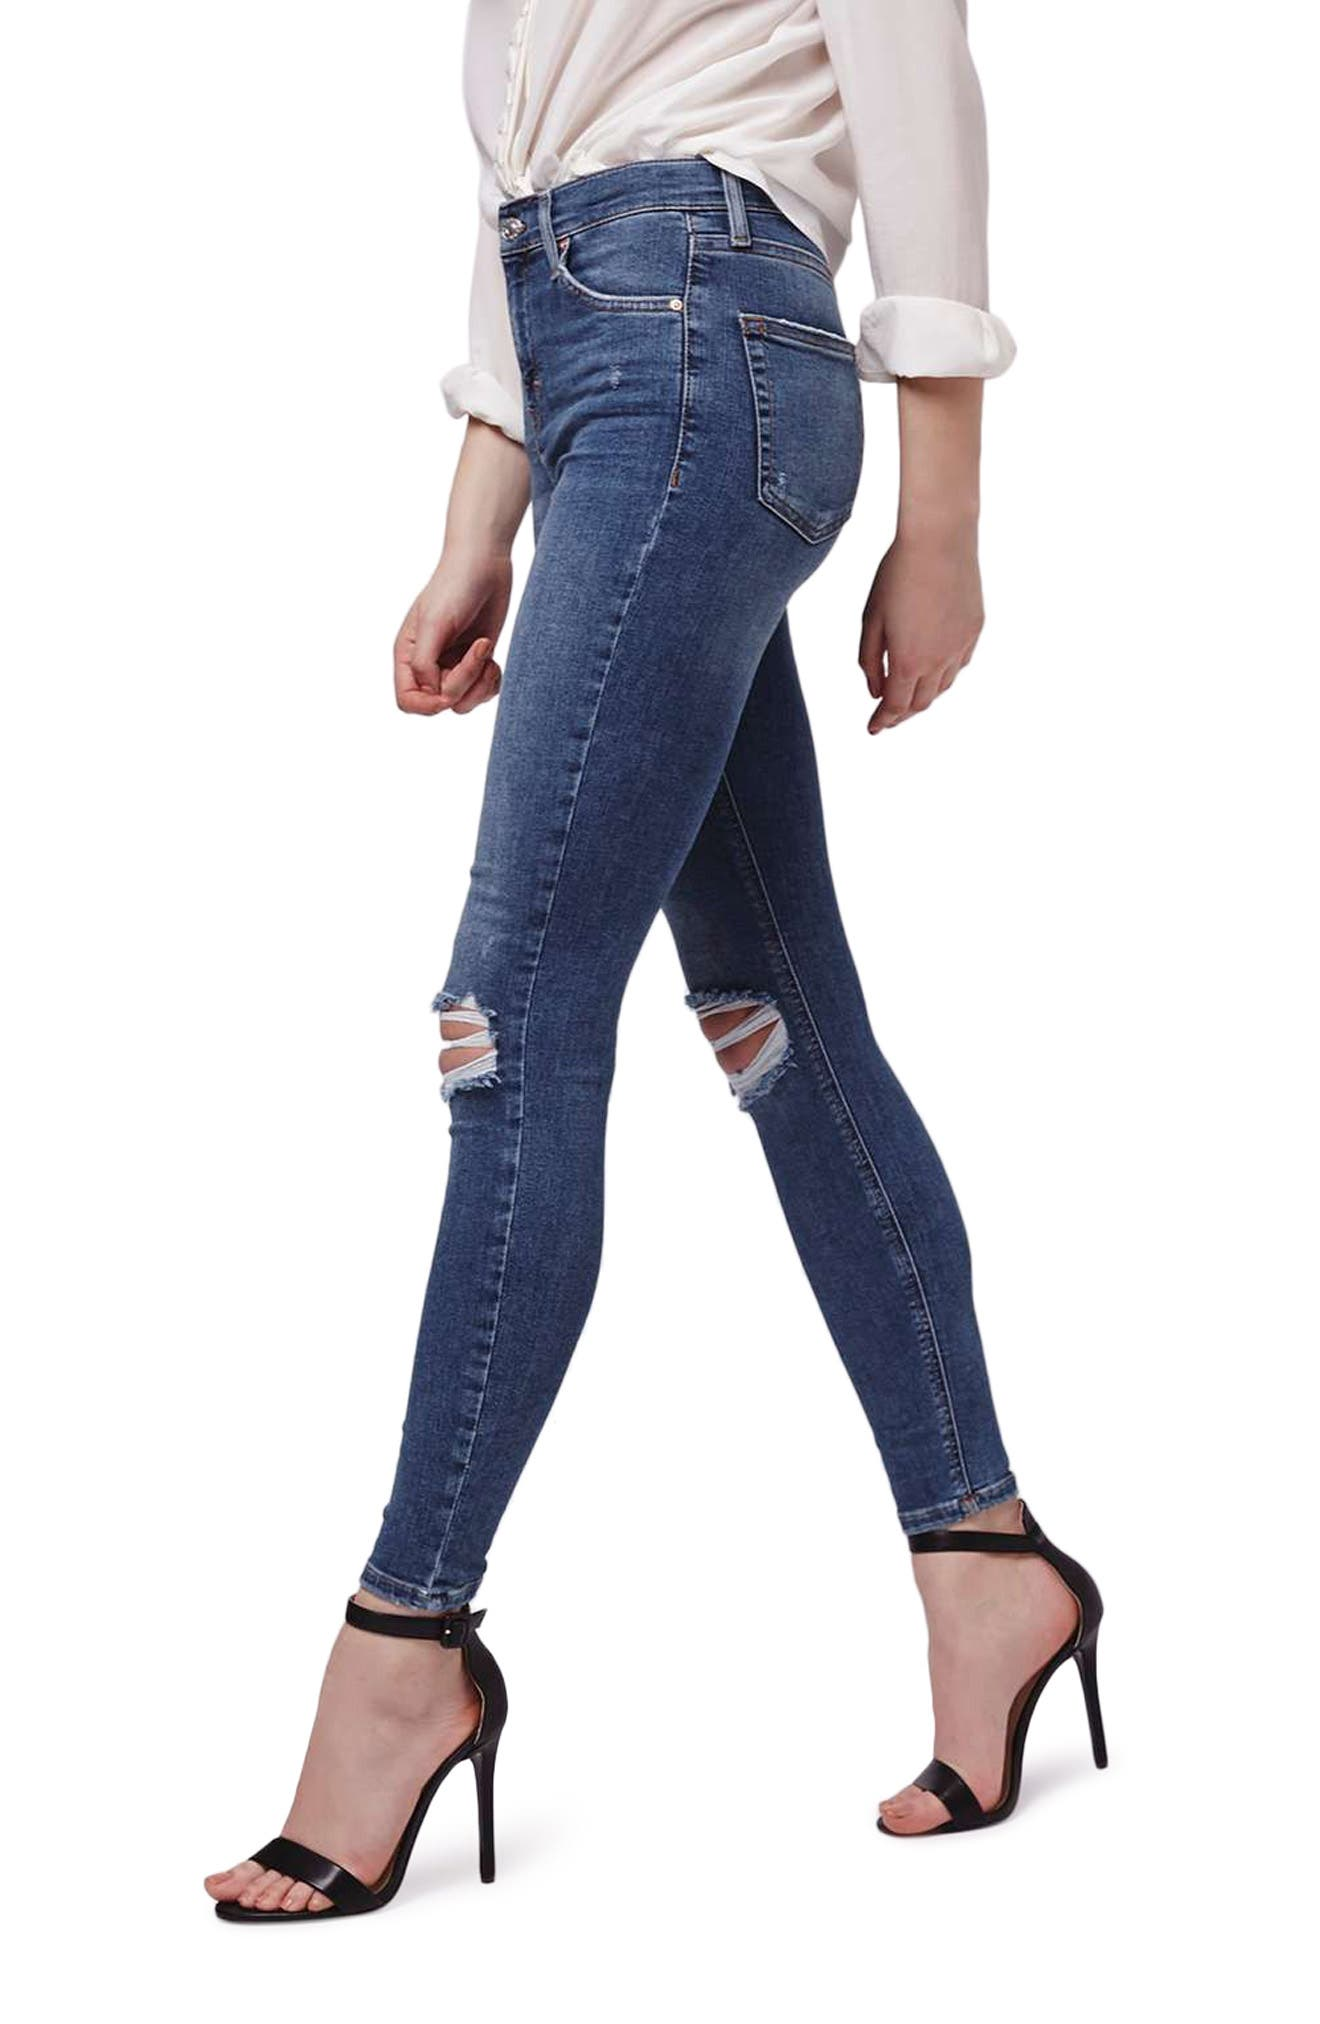 Jamie Rip High Waist Skinny Jeans,                             Alternate thumbnail 3, color,                             420